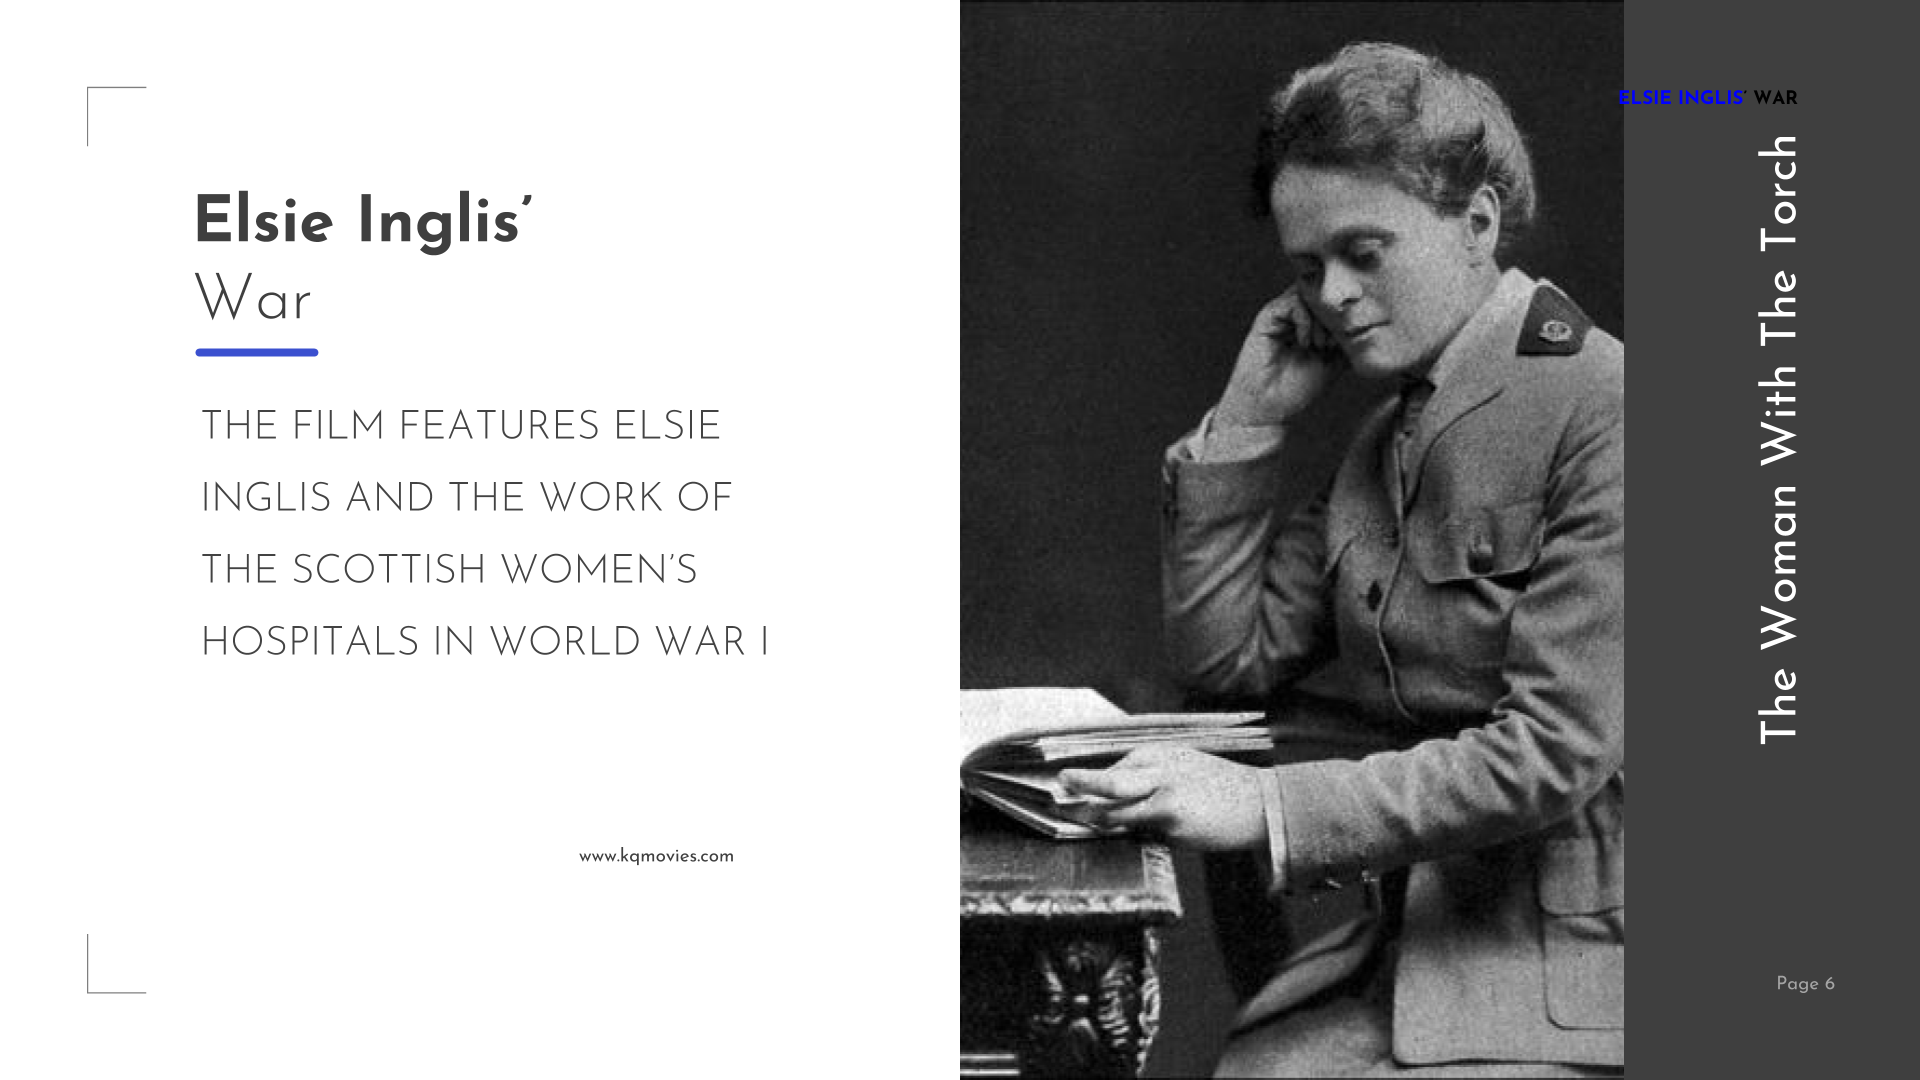 The Woman with the Torch - Elsie Inglis's war